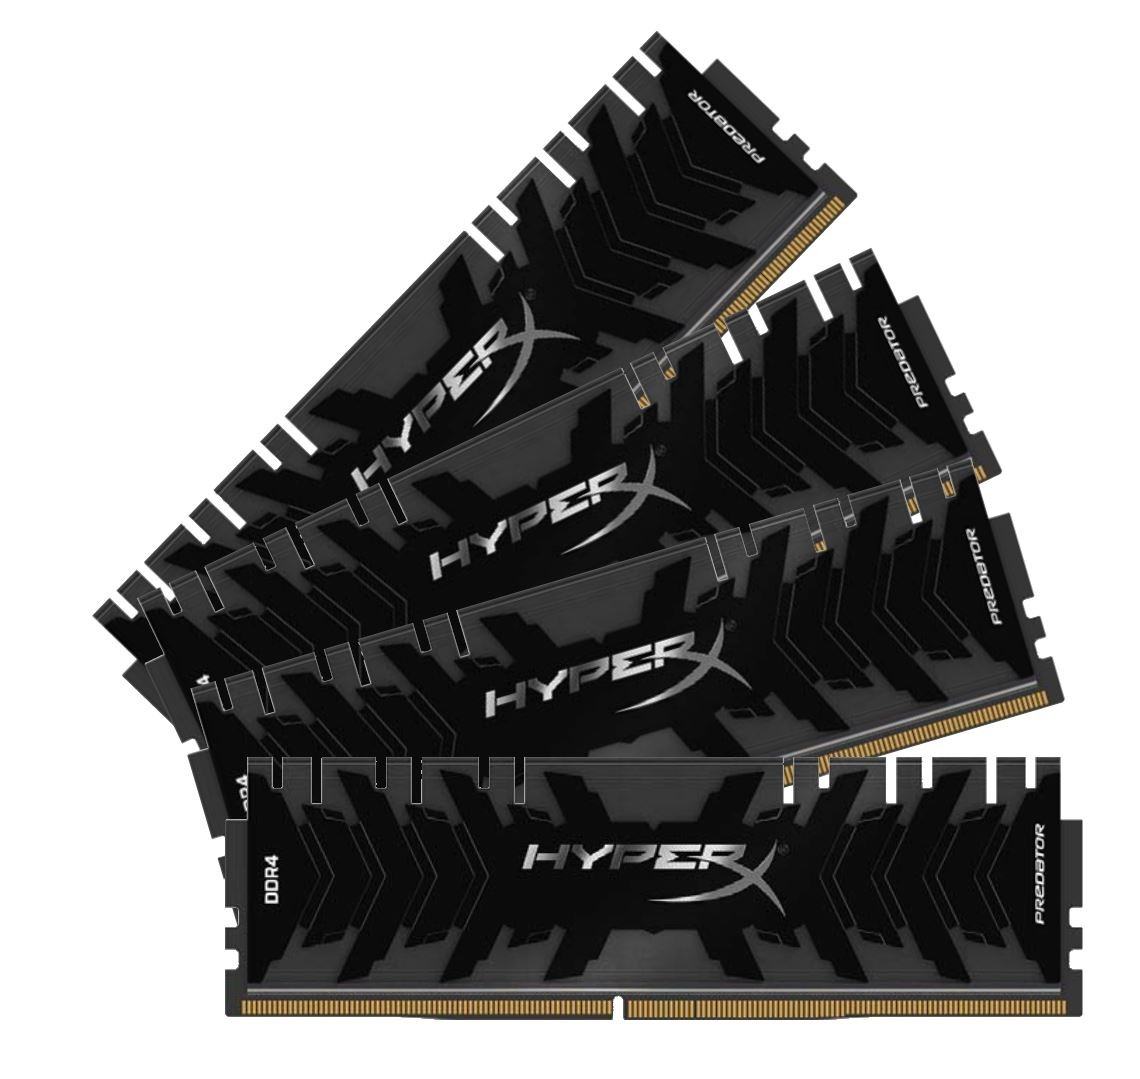 DDR4 64GB (4x16GB), DDR4 3600, CL17, DIMM 288-pin, Kingston HyperX Predator HX436C17PB3K4/64, 36mj